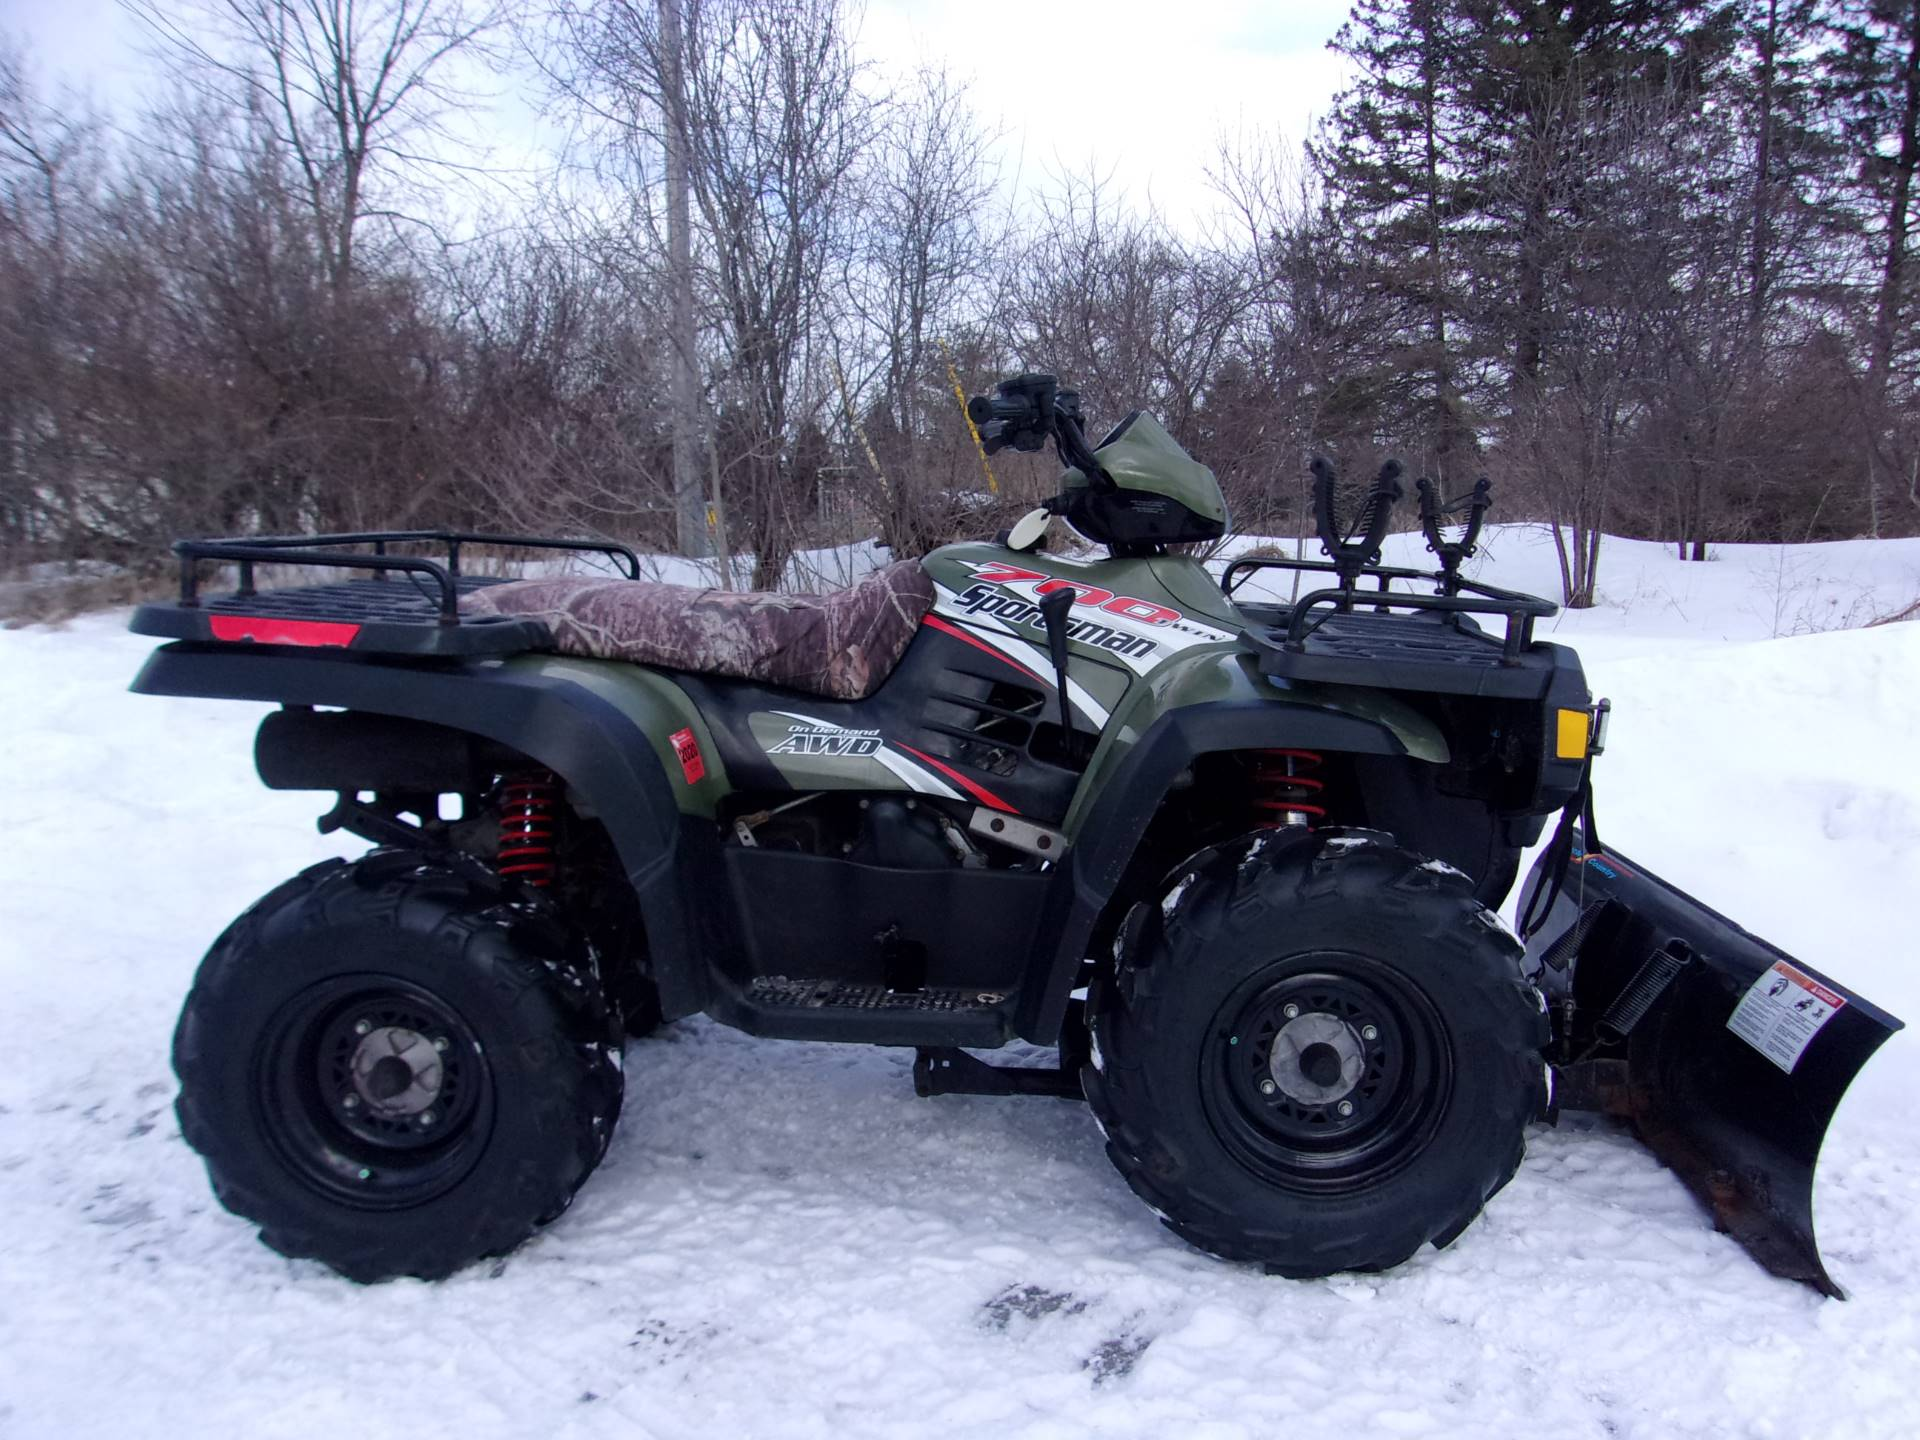 2004 Polaris Sportsman 700 Twin in Mukwonago, Wisconsin